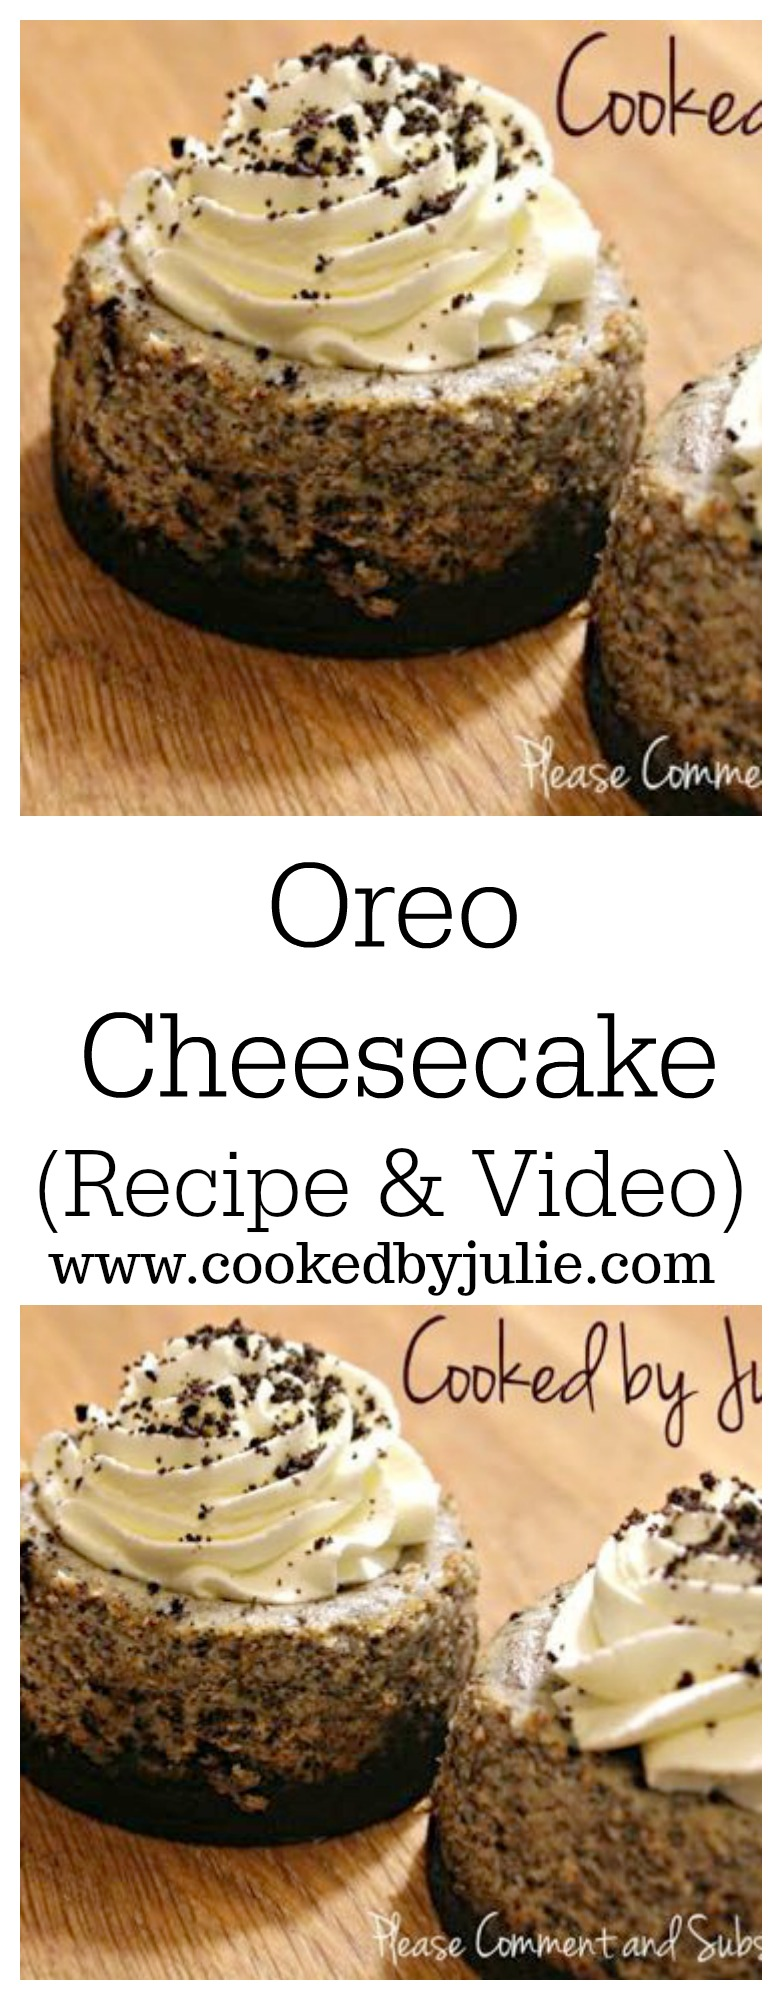 Mini Oreo Cheesecake Bites | Recipe with Video by Cooked By Julie